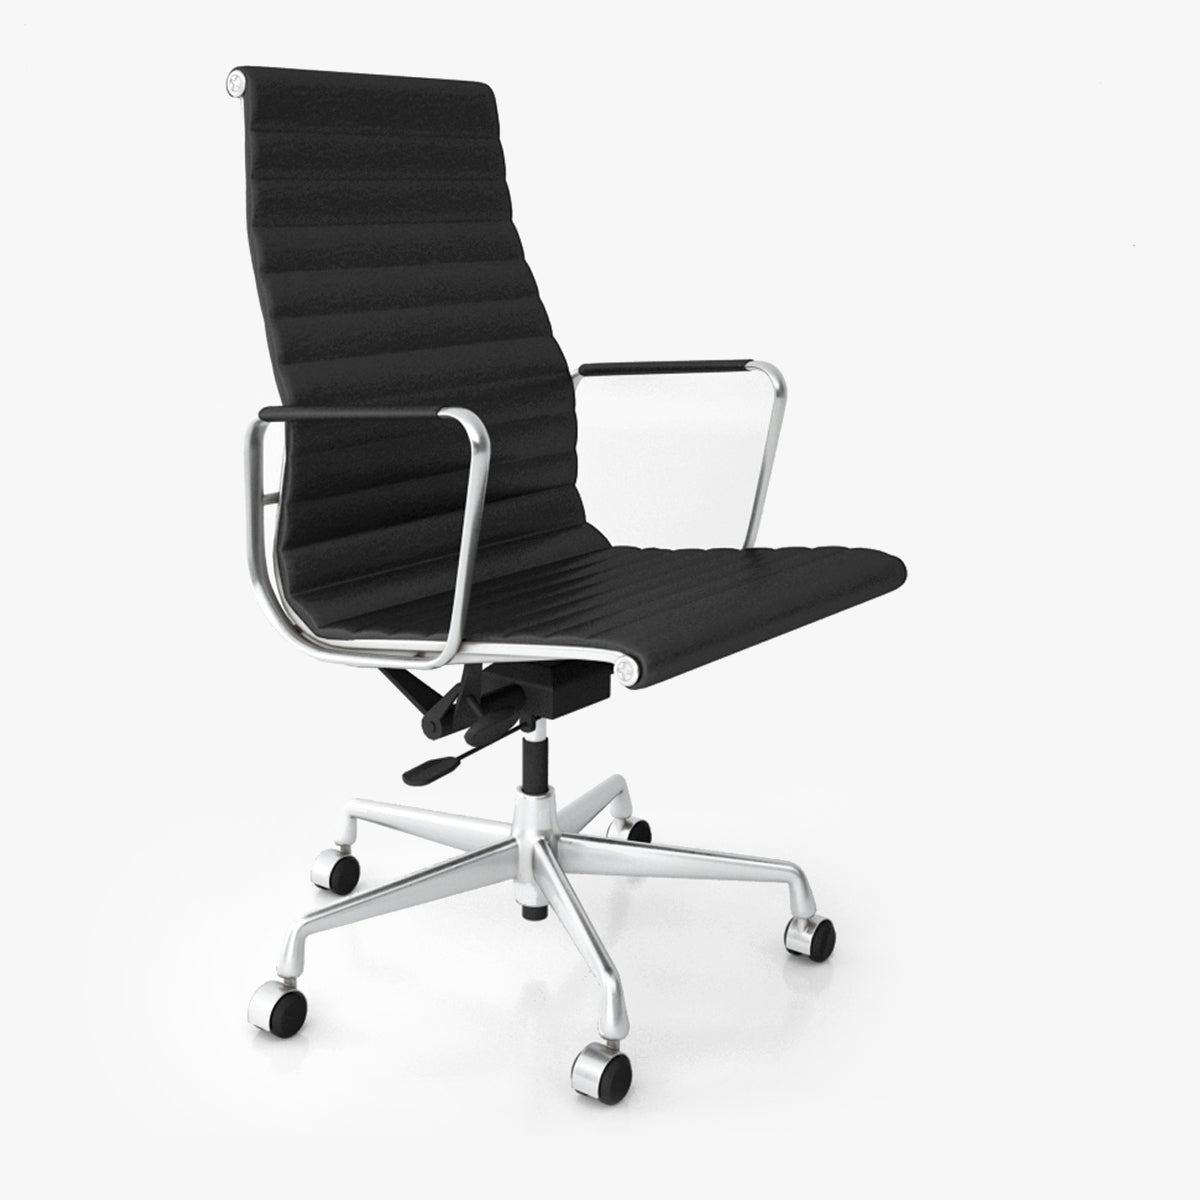 Vitra Aluminium Chair EA 119 3D Model